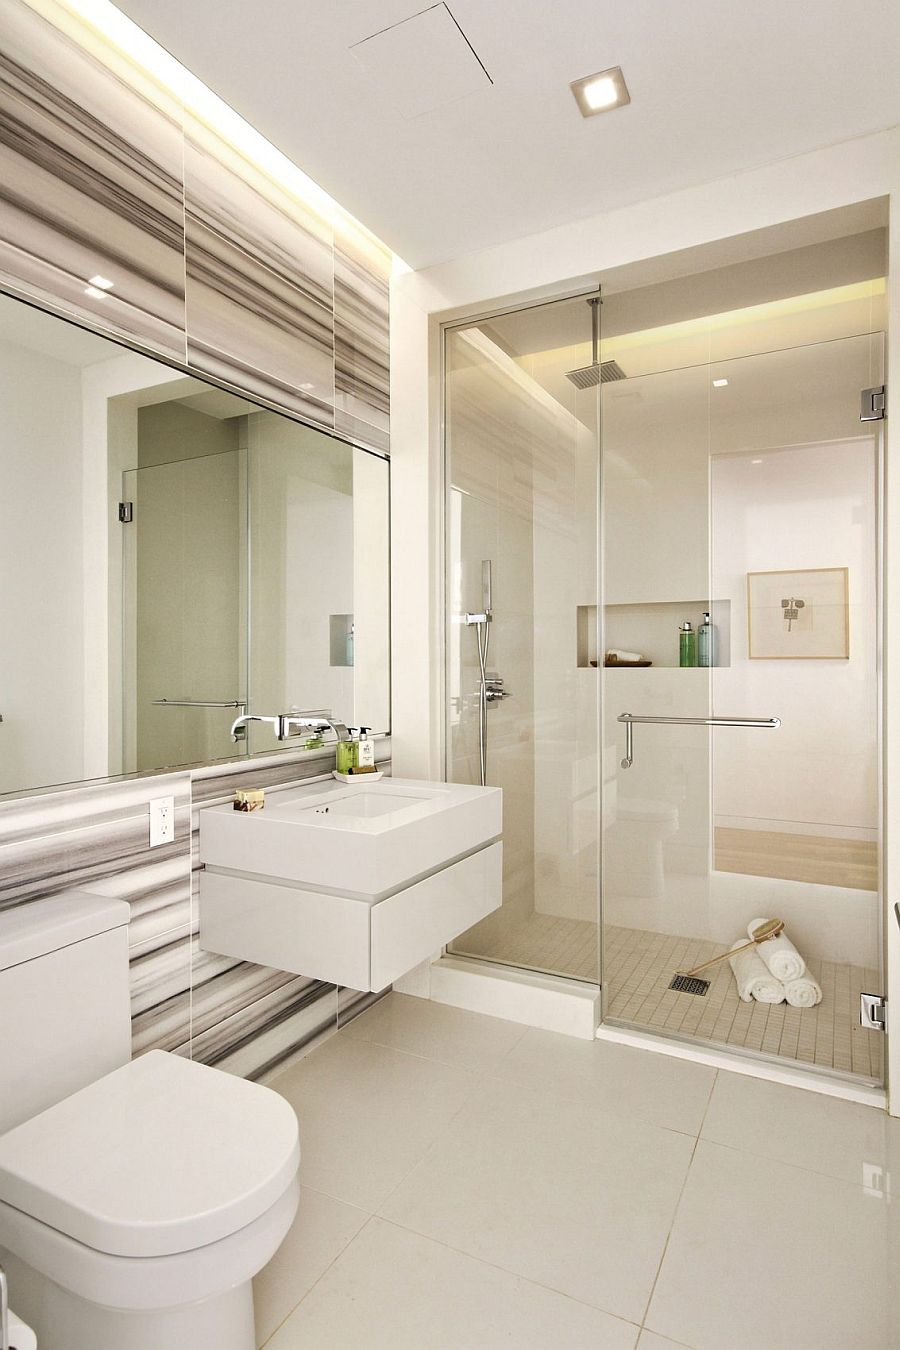 Lavish modern bathroom in white